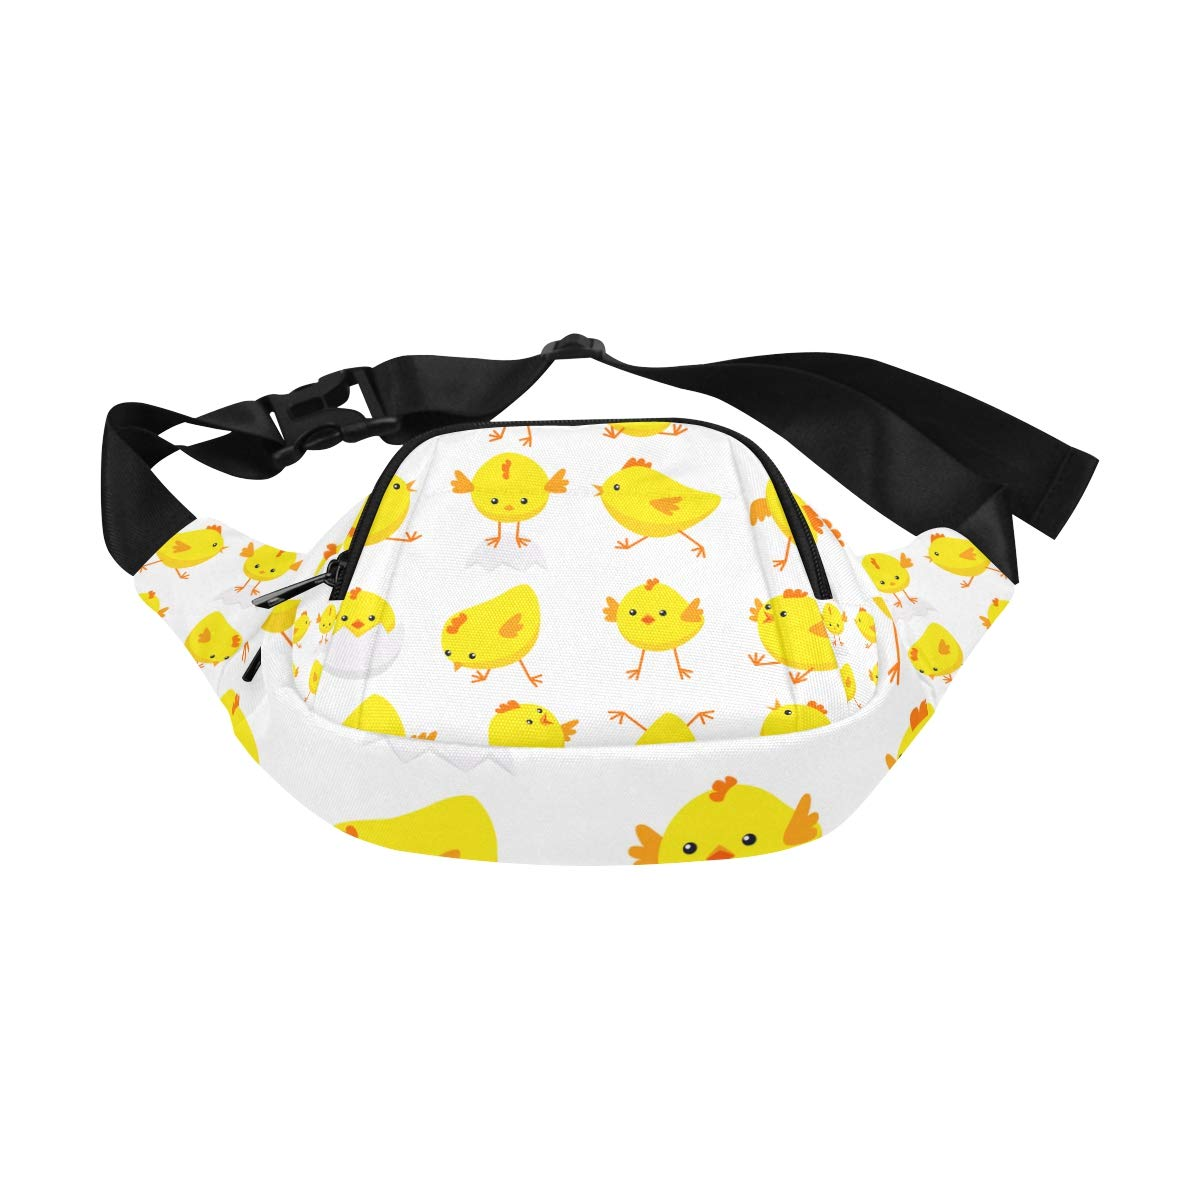 Yellow And Orange Chickens Fenny Packs Waist Bags Adjustable Belt Waterproof Nylon Travel Running Sport Vacation Party For Men Women Boys Girls Kids